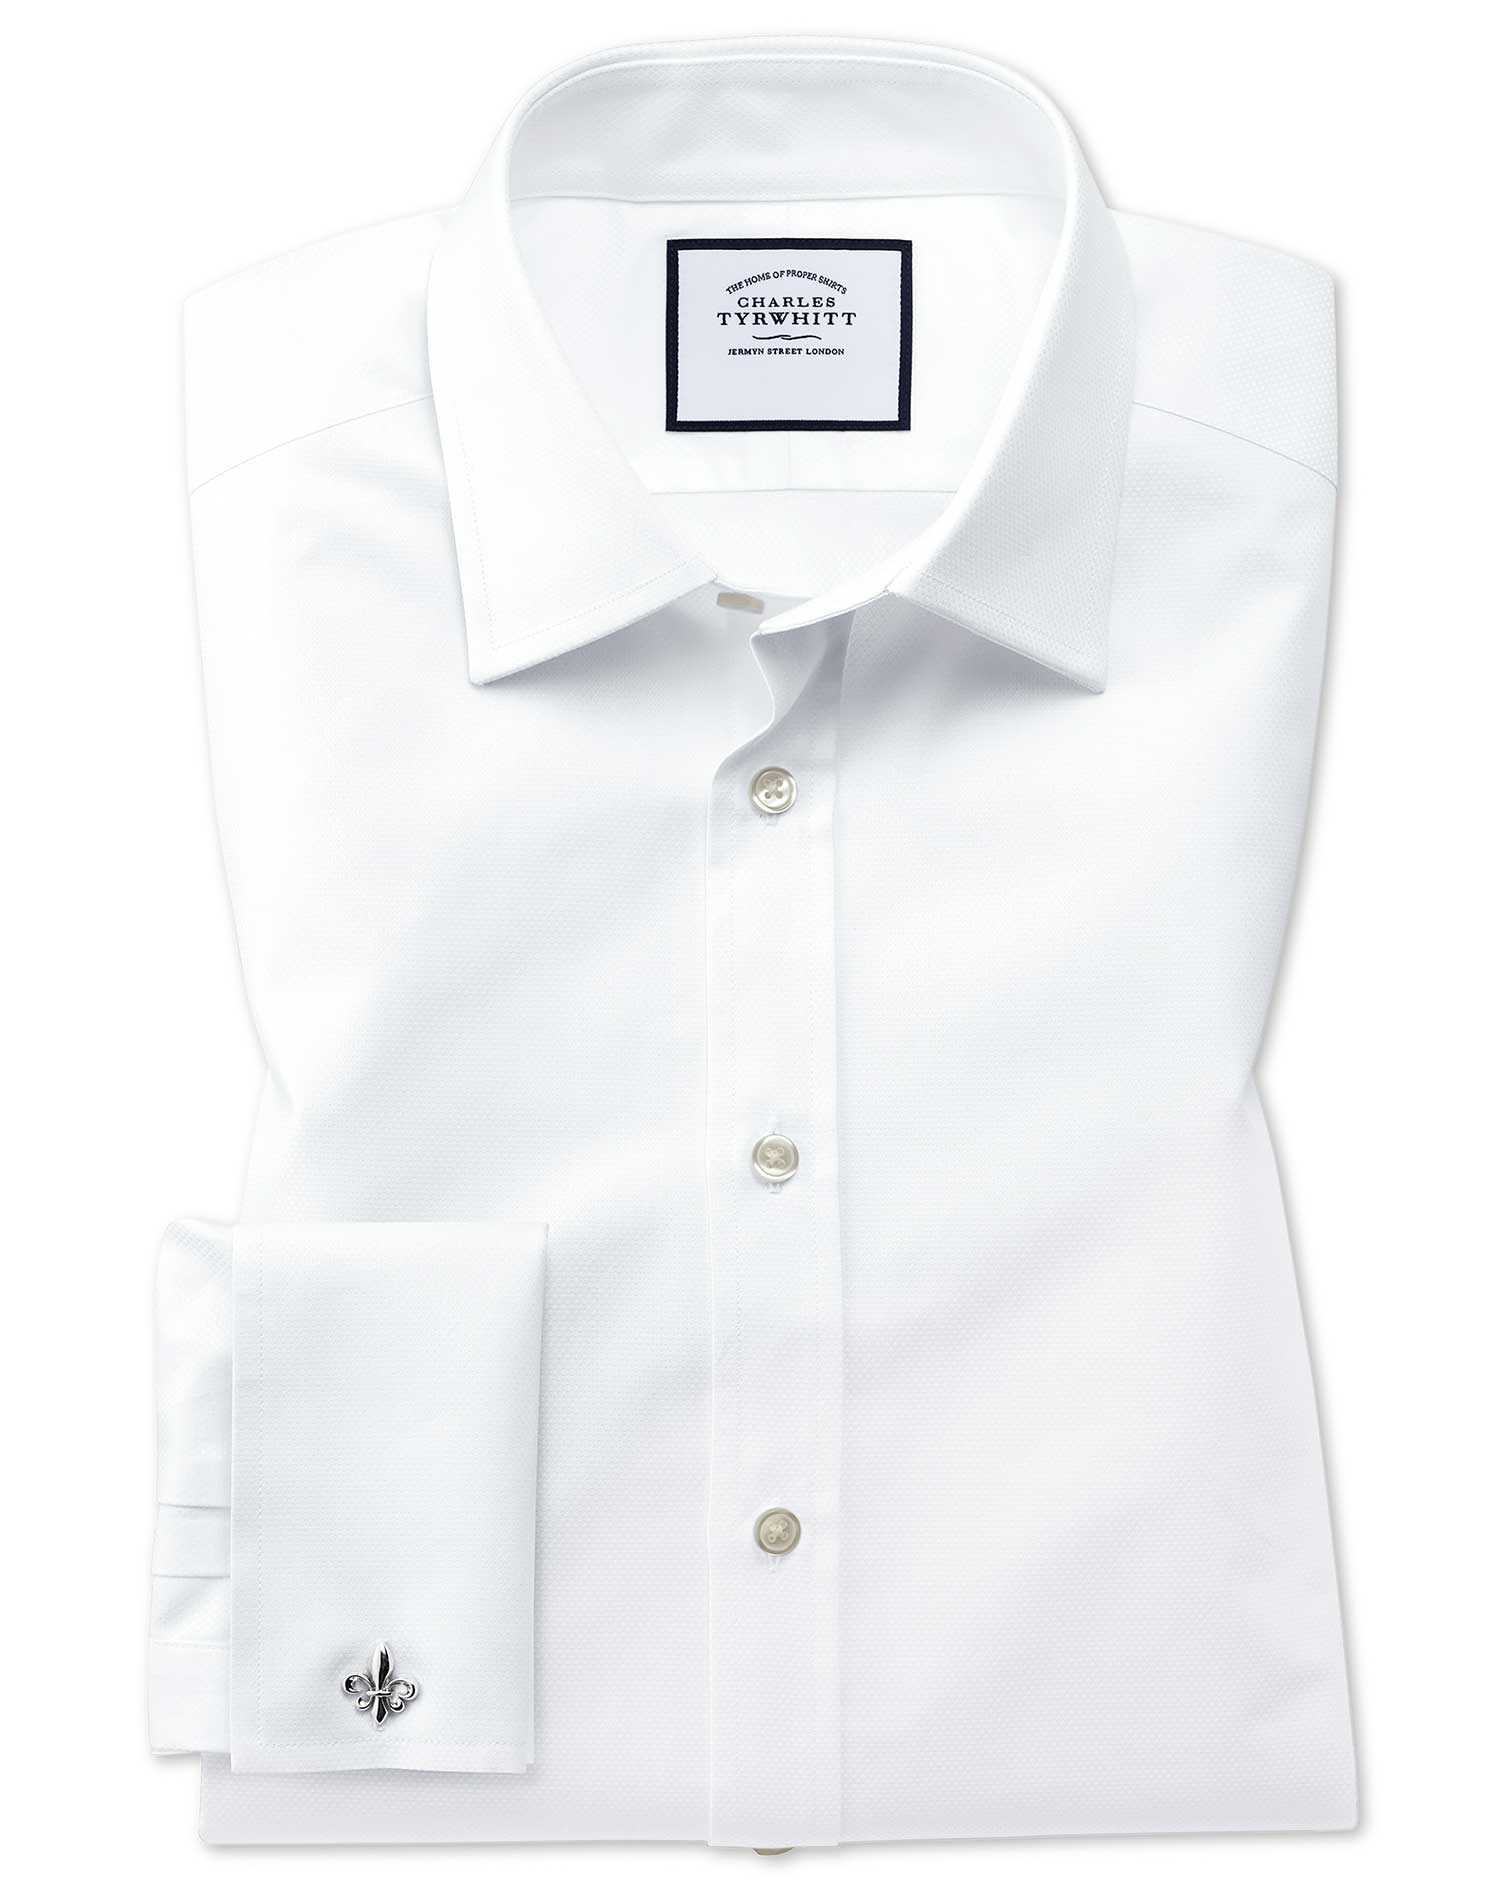 Classic Fit Egyptian Cotton Trellis Weave White Formal Shirt Double Cuff Size 18/35 by Charles Tyrwh